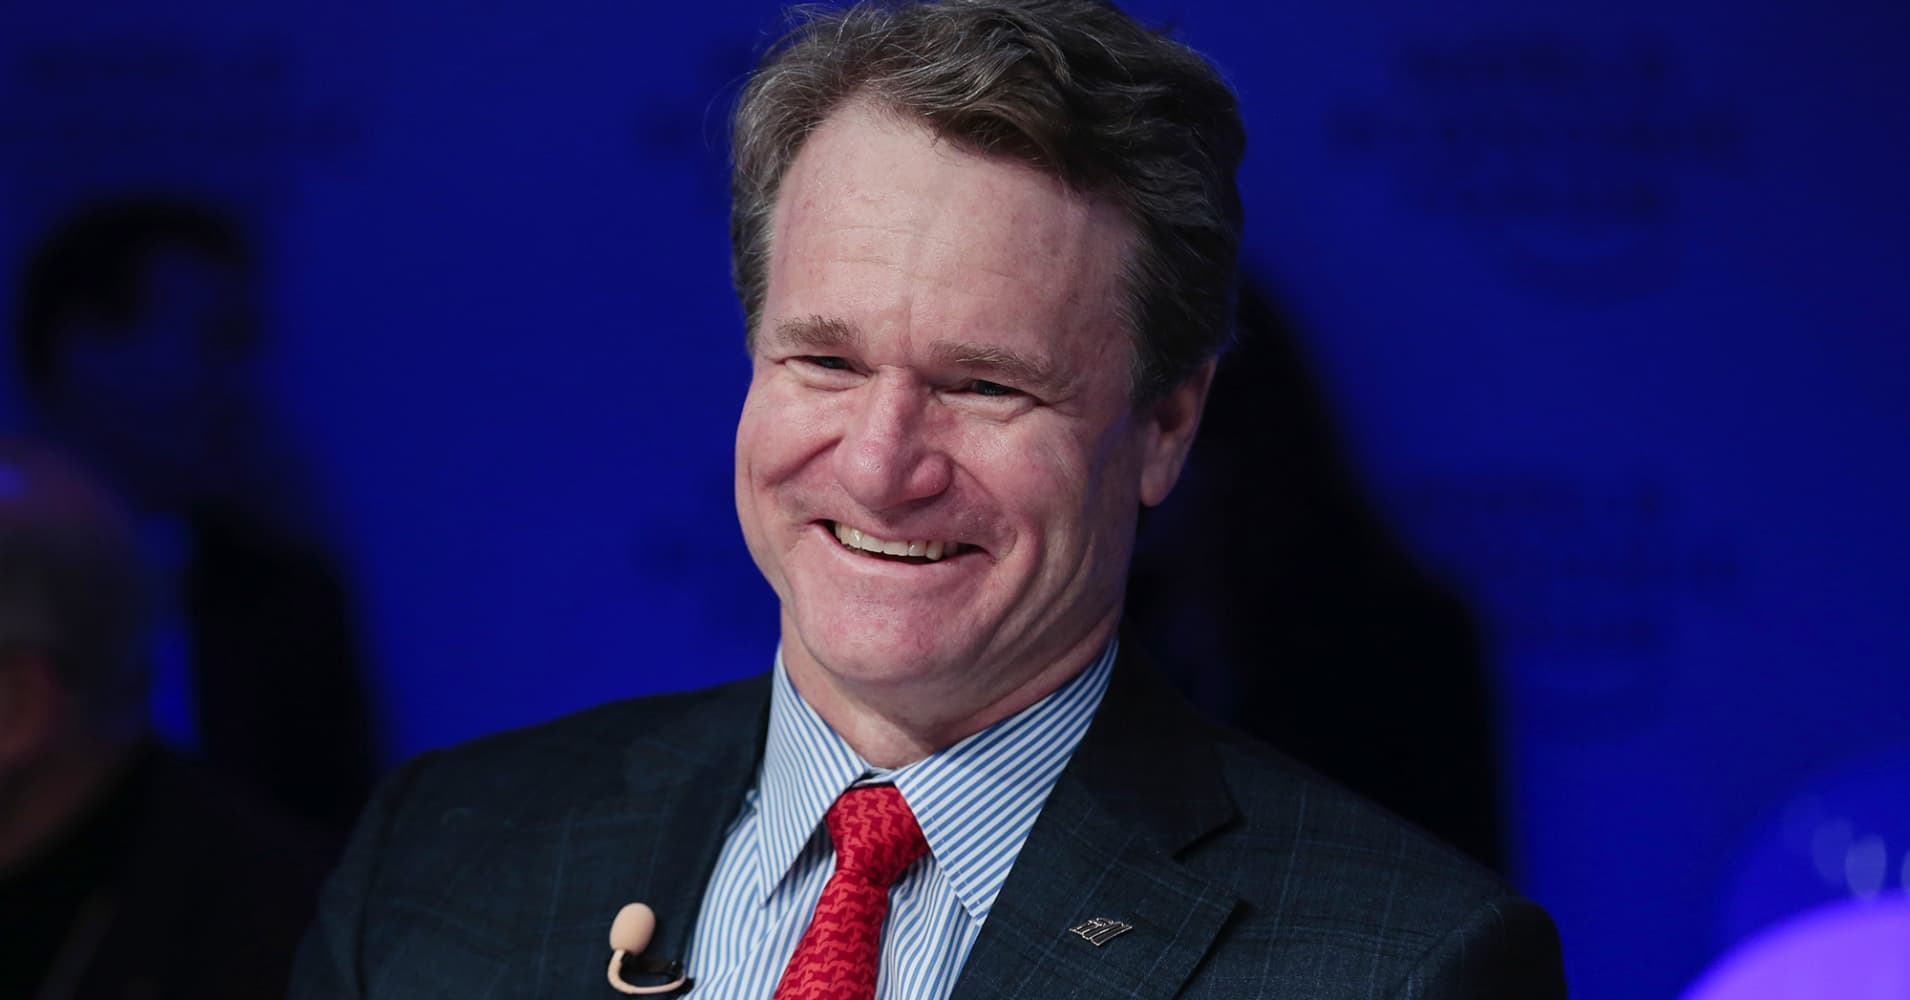 Bank of America is giving some employees a $1,000 bonus, citing tax bill